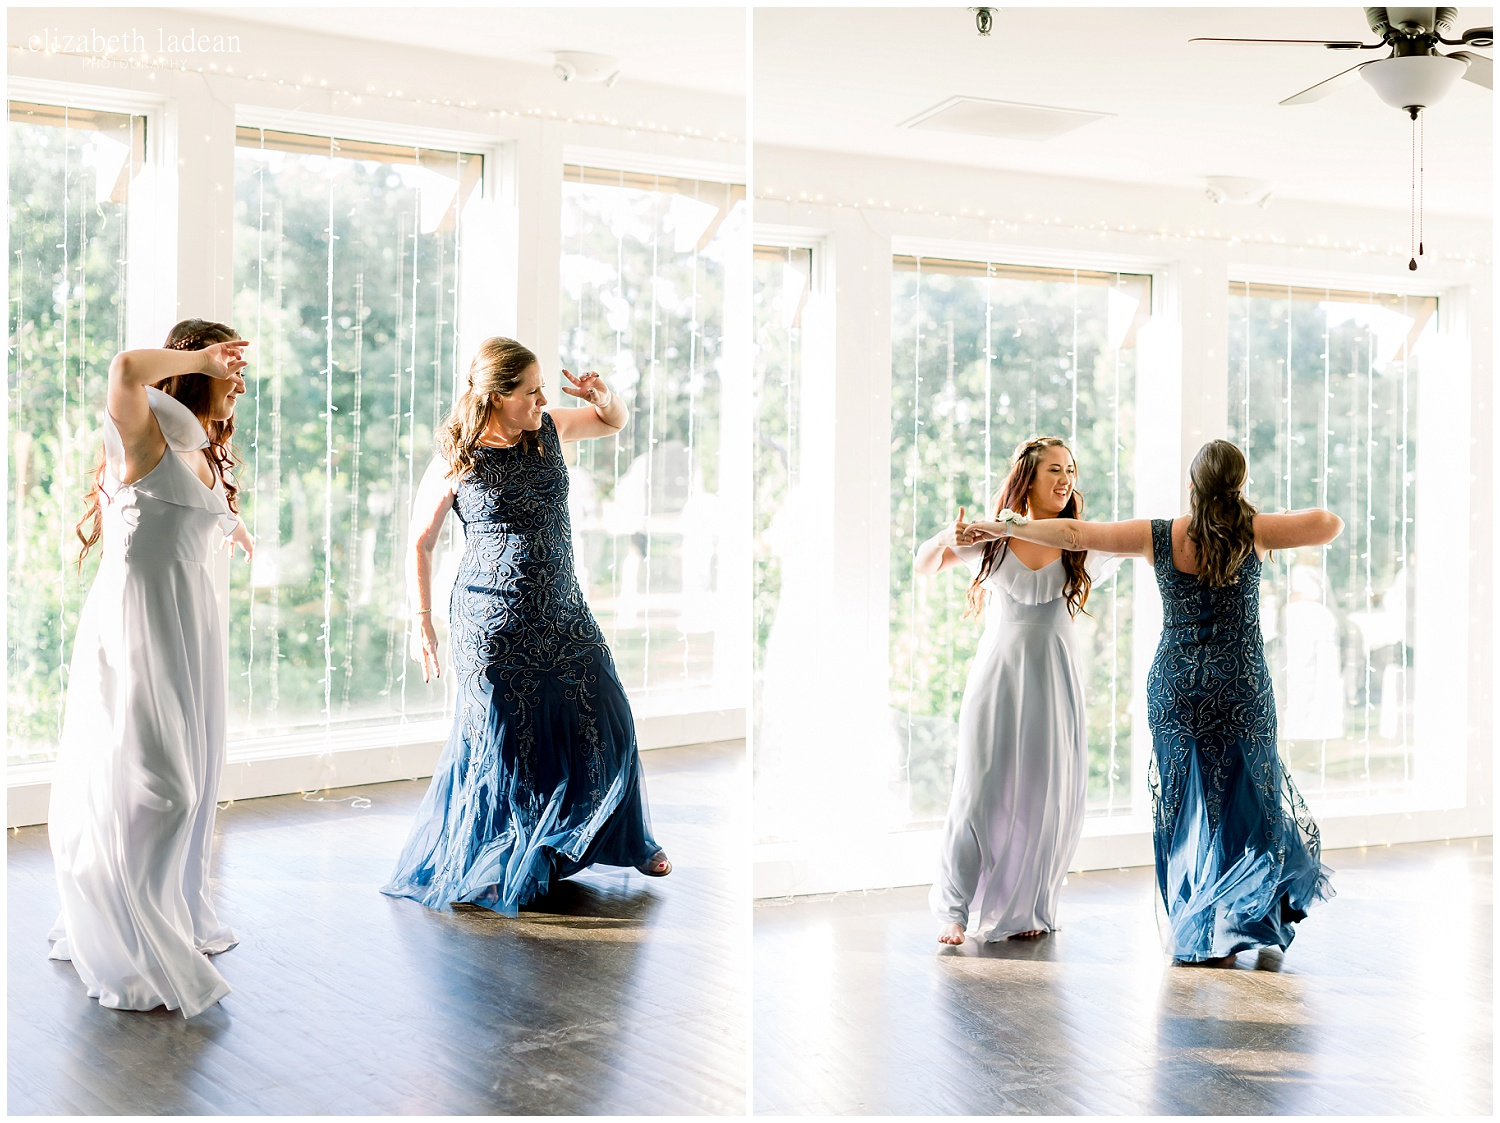 -behind-the-scenes-of-a-wedding-photographer-2018-elizabeth-ladean-photography-photo_3472.jpg